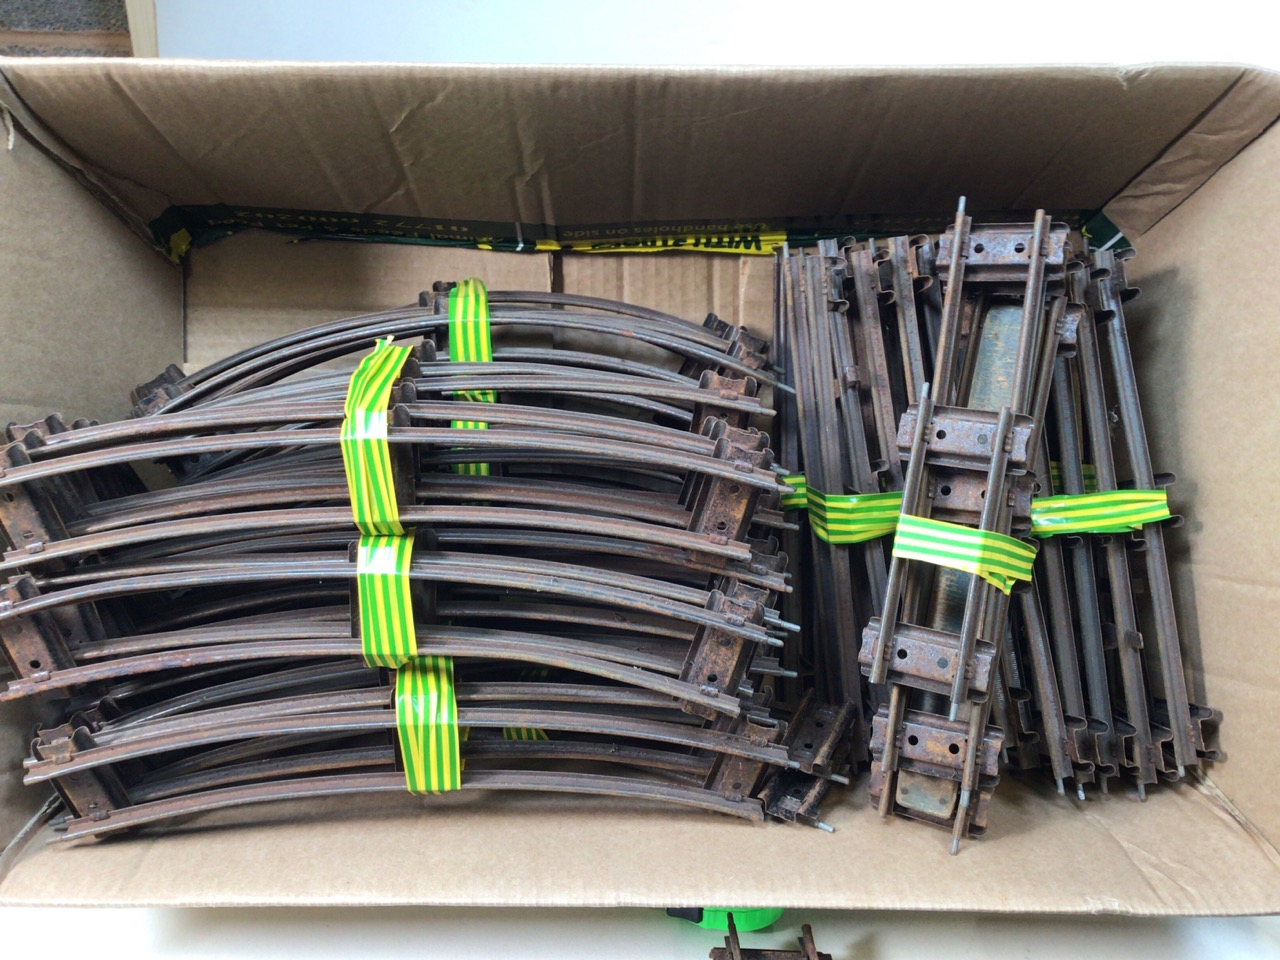 A large collection of 0 gauge Hornby tinplate items to include track, track accessories, buffers, - Image 2 of 5